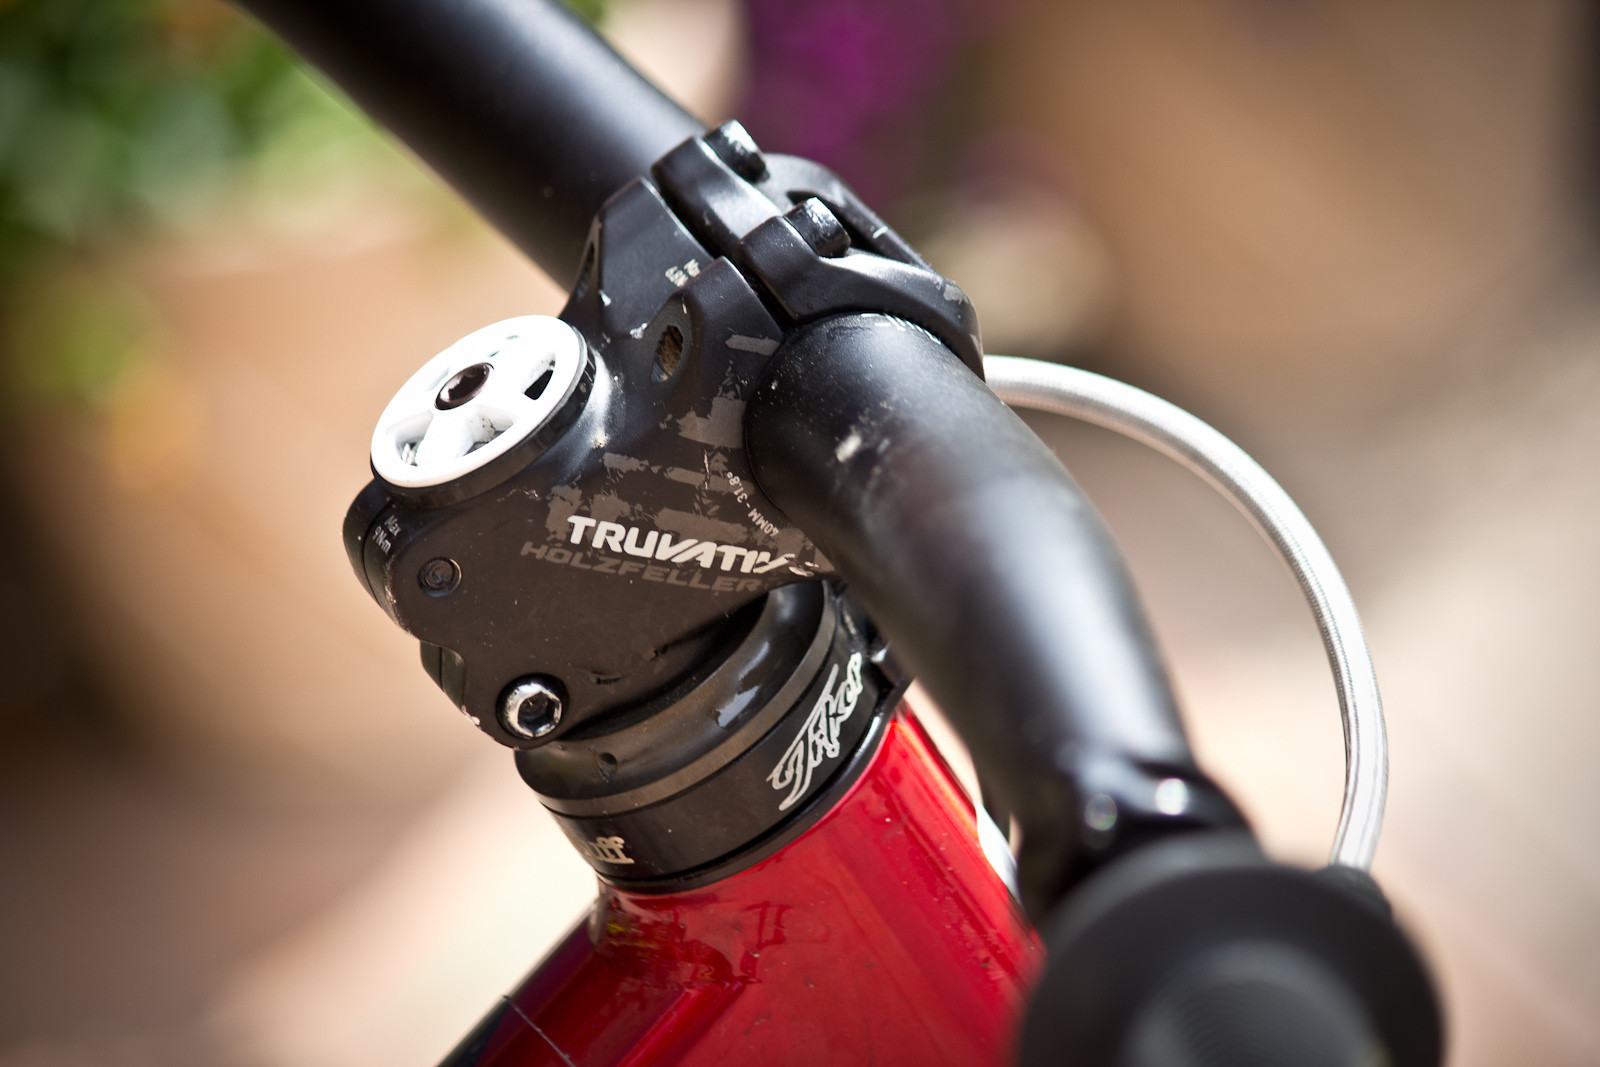 Truvativ Holzfeller Stem - Winning Bike: Martin Söderström's Specialized P.Slope - Mountain Biking Pictures - Vital MTB